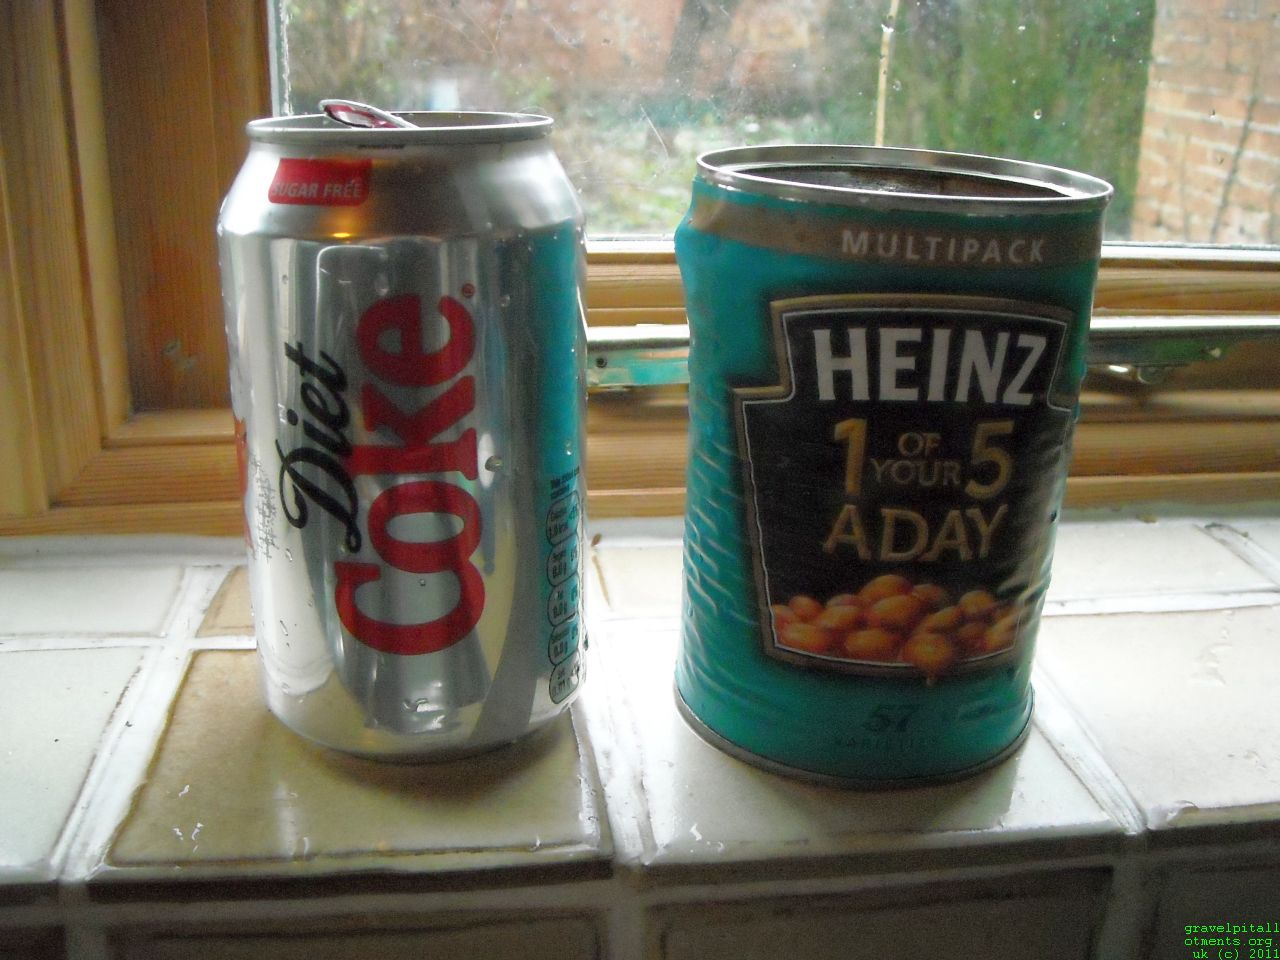 Diet Coke Can and Heinz Baked Beans Can